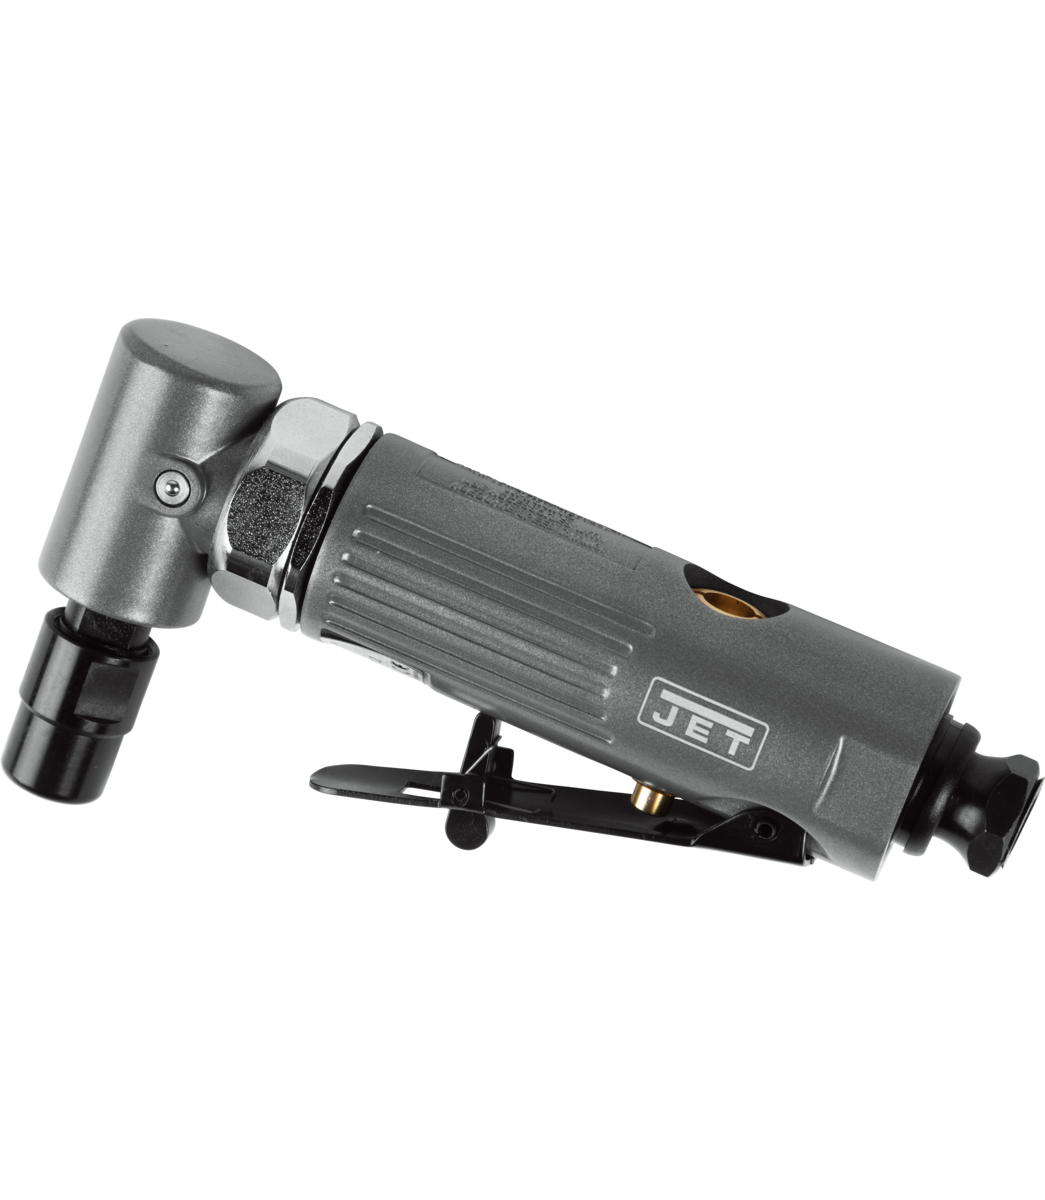 "JAT-403 1/4"" RIGHT ANGLE DIE GRINDER"